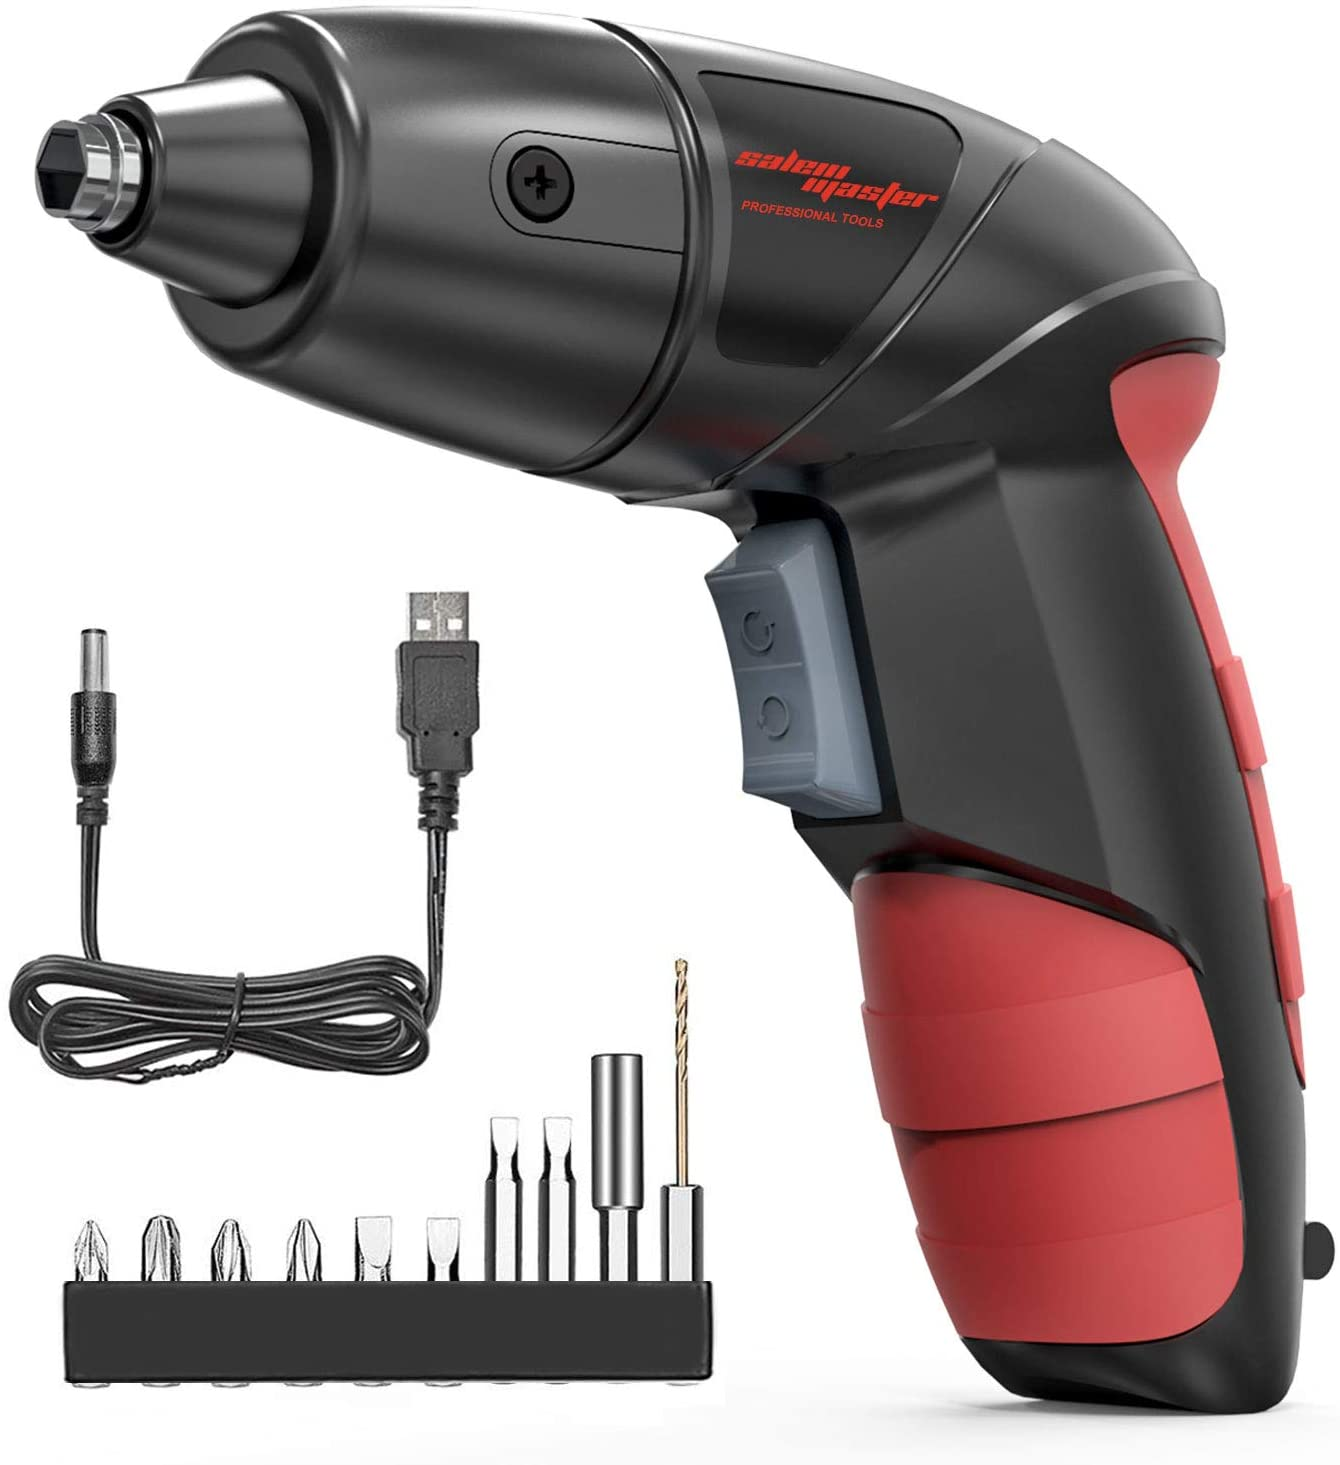 SALEM MASTER Cordless Screwdriver Electric Rechargeable Screwdriver 3.6V Lithium Ion Power Screw Guns with Battery Indicator for Household, Newbies and Experienced